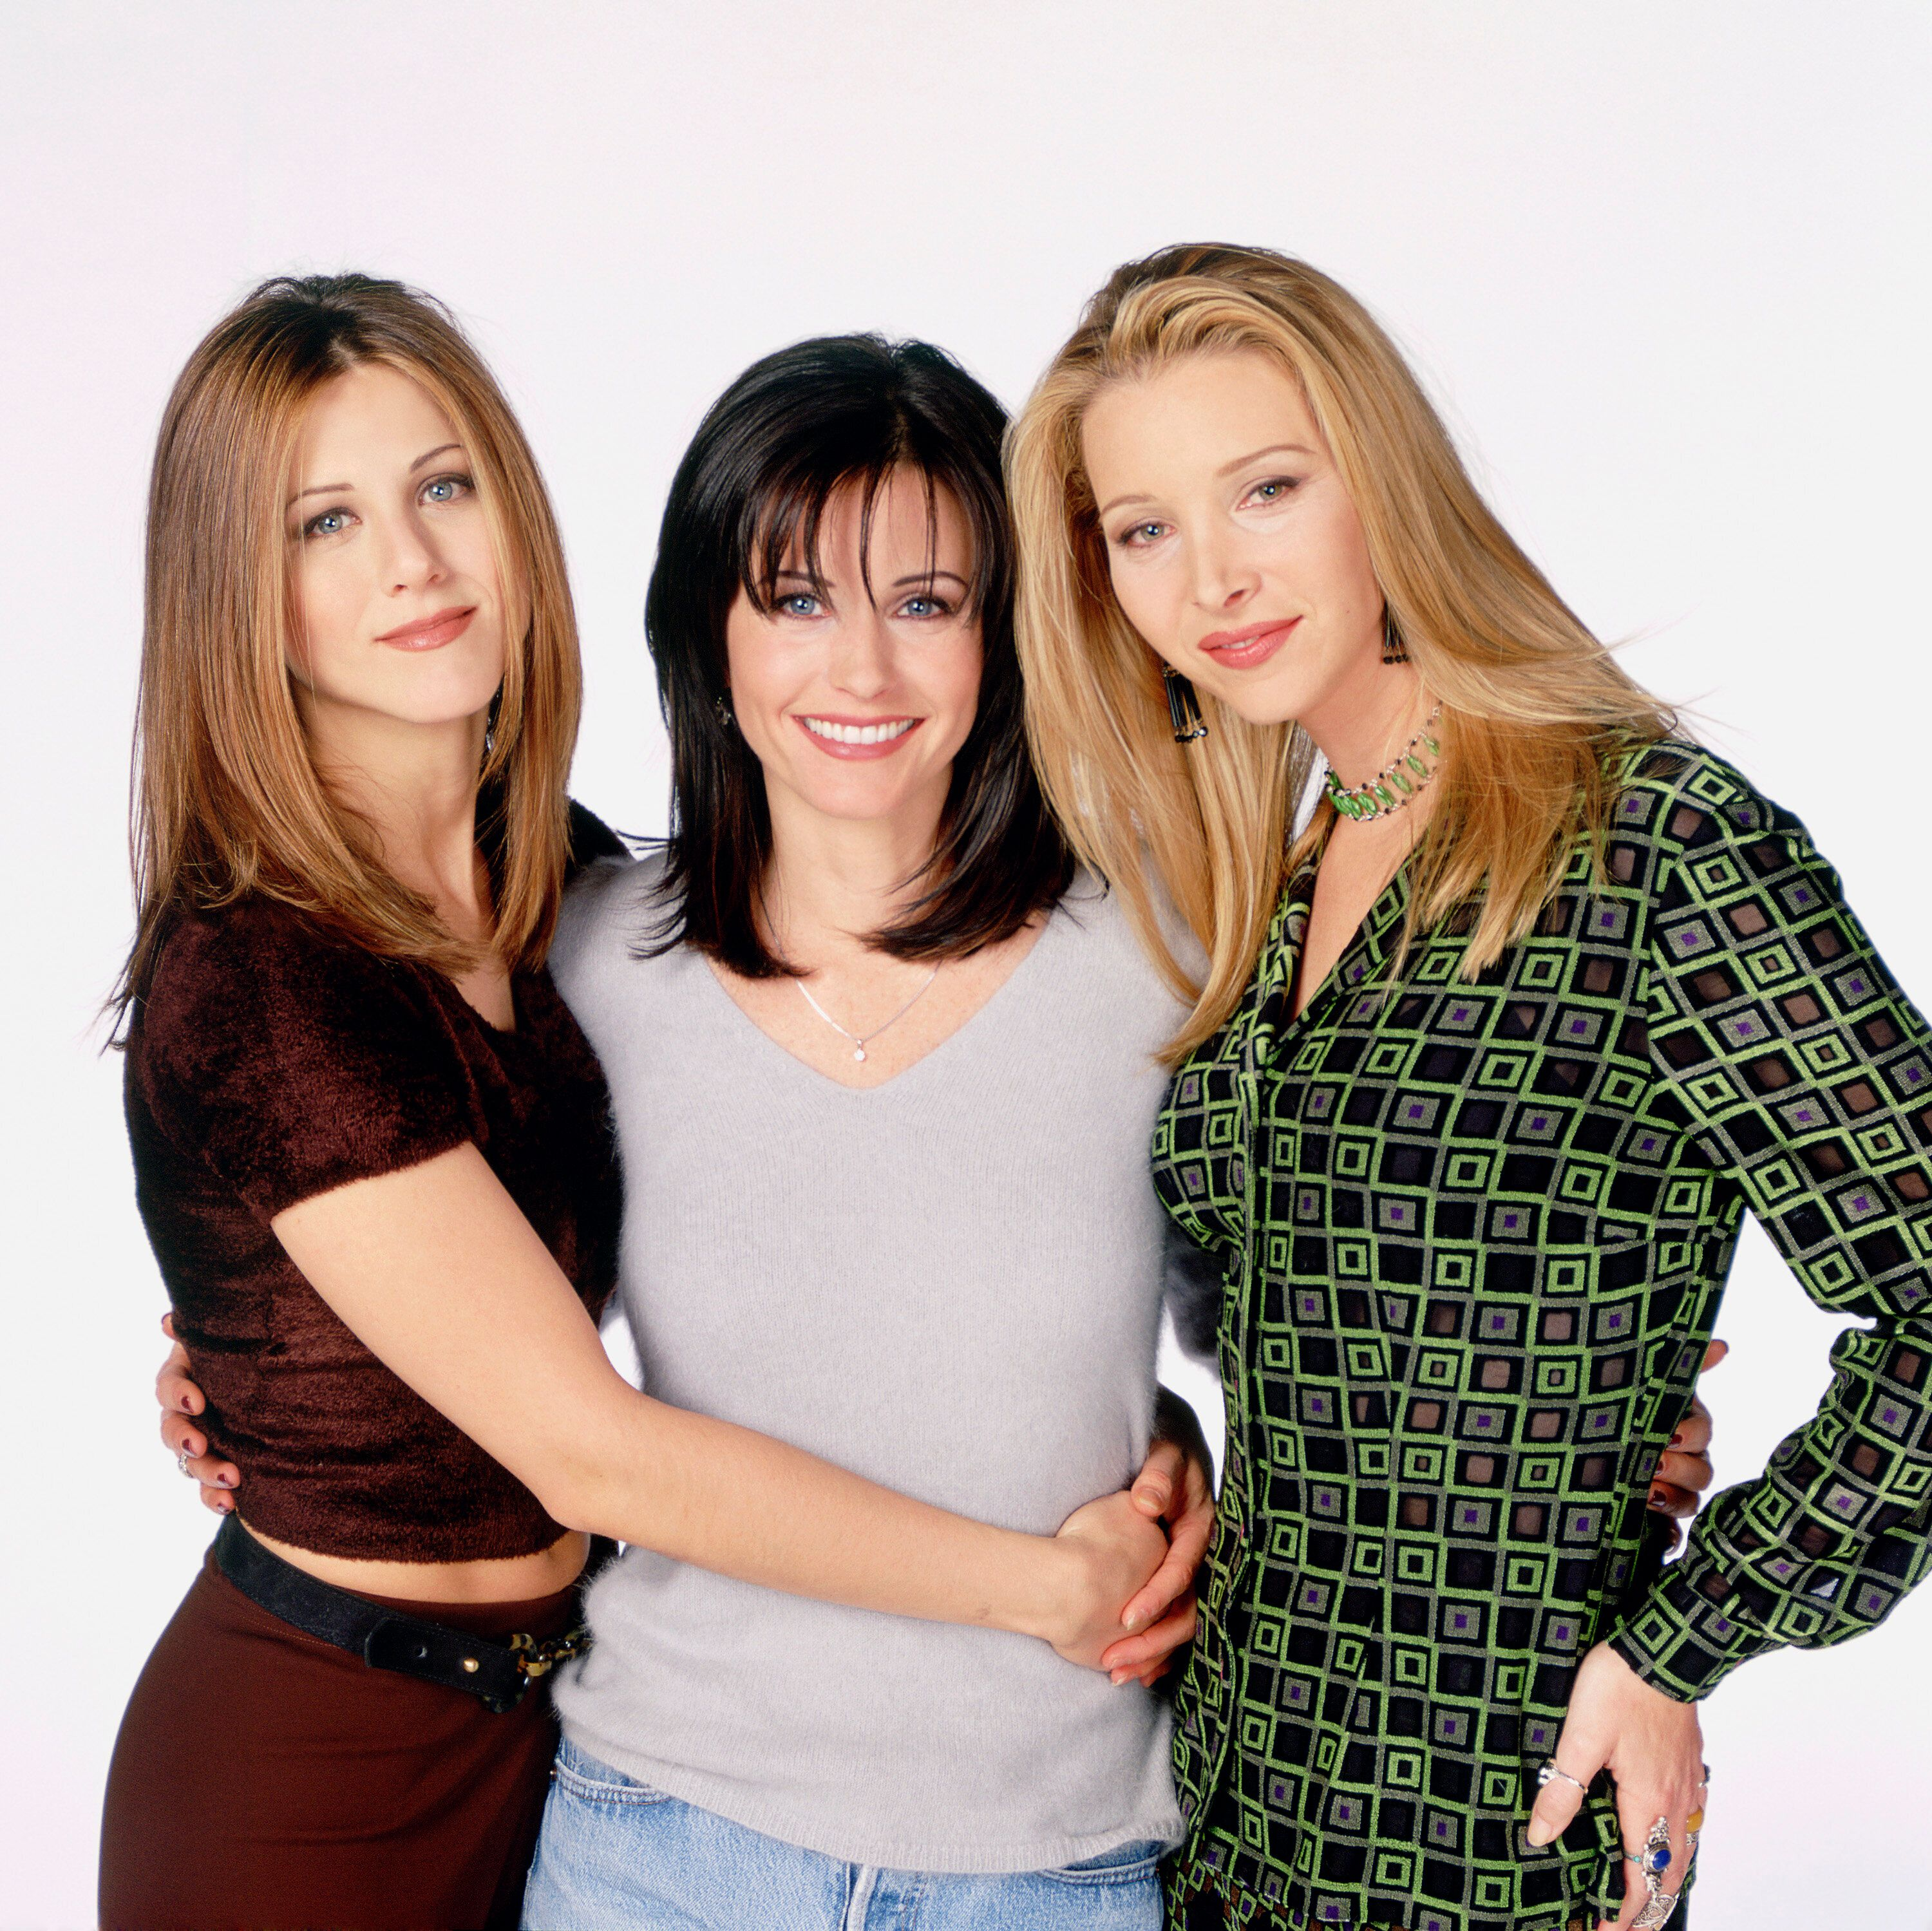 Phoebe de «Friends» a souffert de se comparer à Jennifer Aniston et Courteney